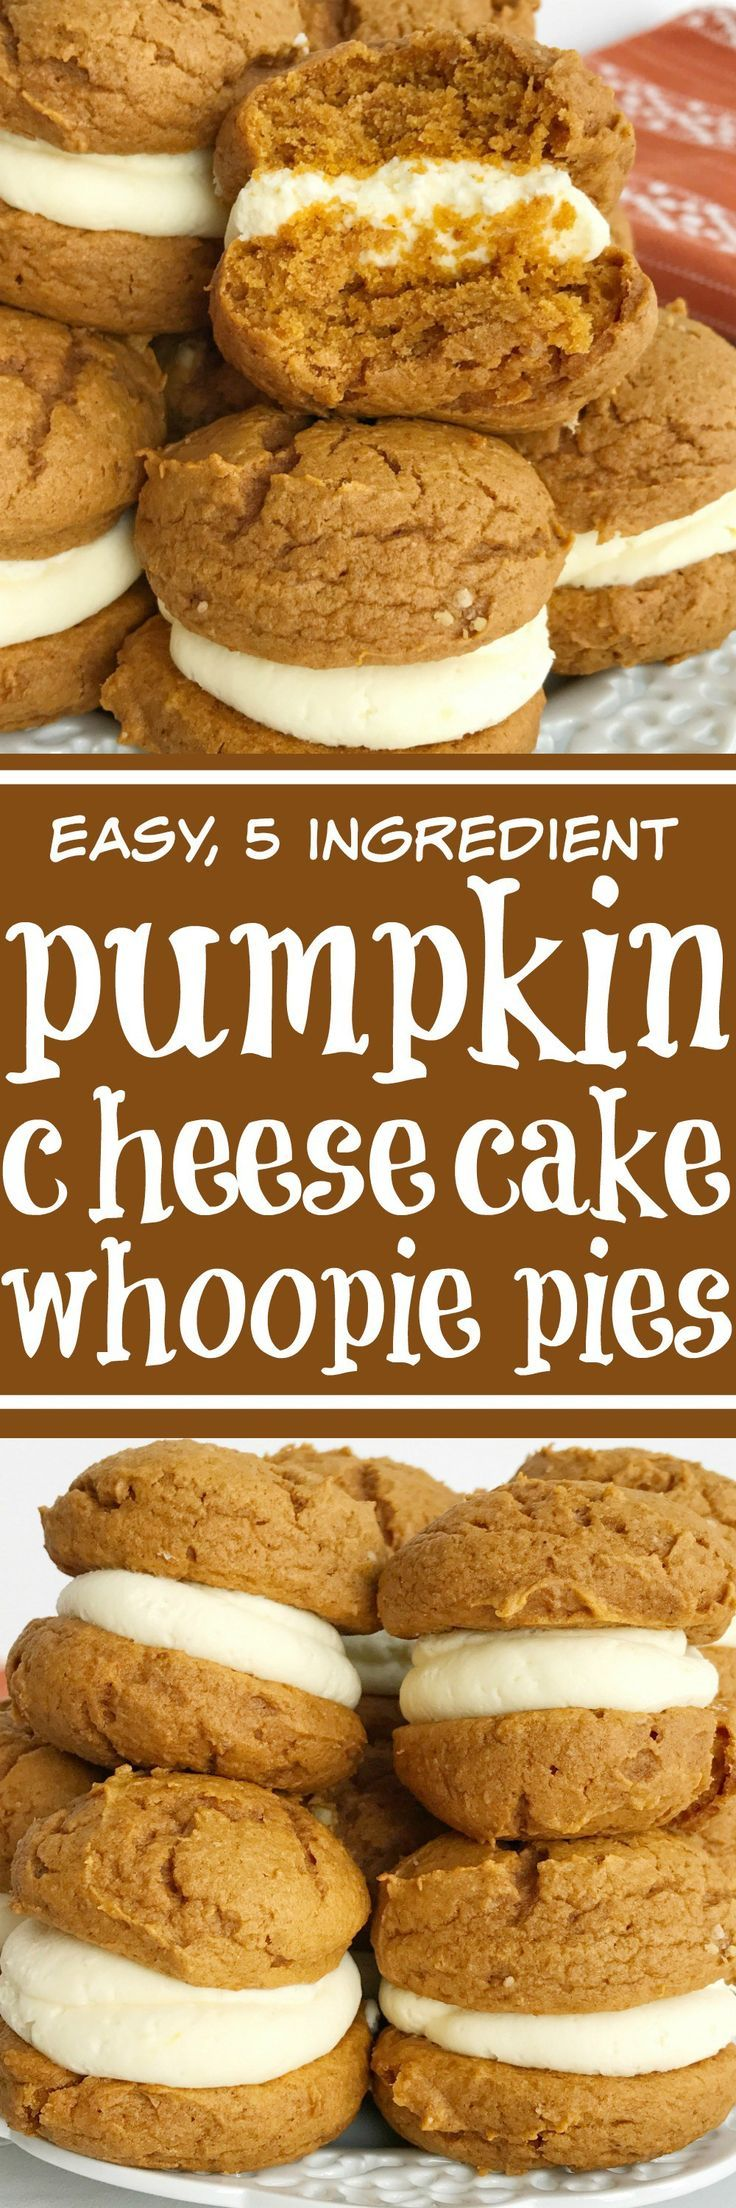 You only need 5 ingredients for the best pumpkin dessert of Fall; pumpkin cheesecake whoopie pies. Fluffy & sweet cheesecake whipped cream in between two soft pumpkin cookies. Not only are these so easy but they will disappear just as fast | togetherasfamily.com